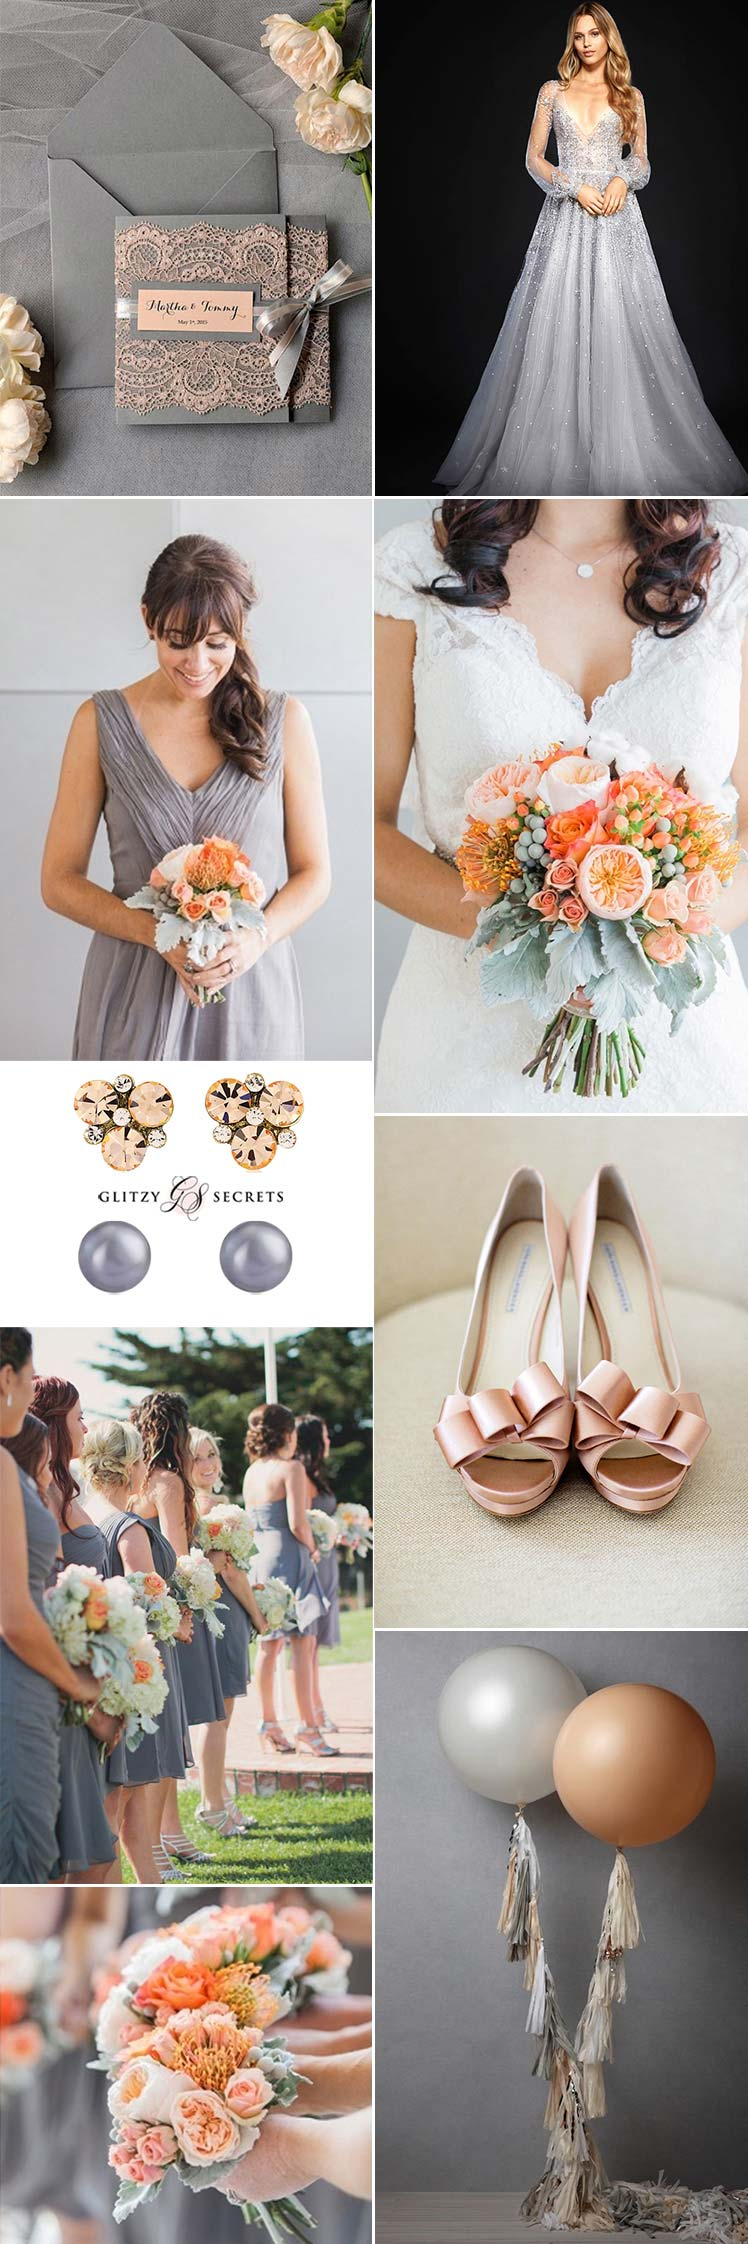 Charcoal grey and peach wedding theme